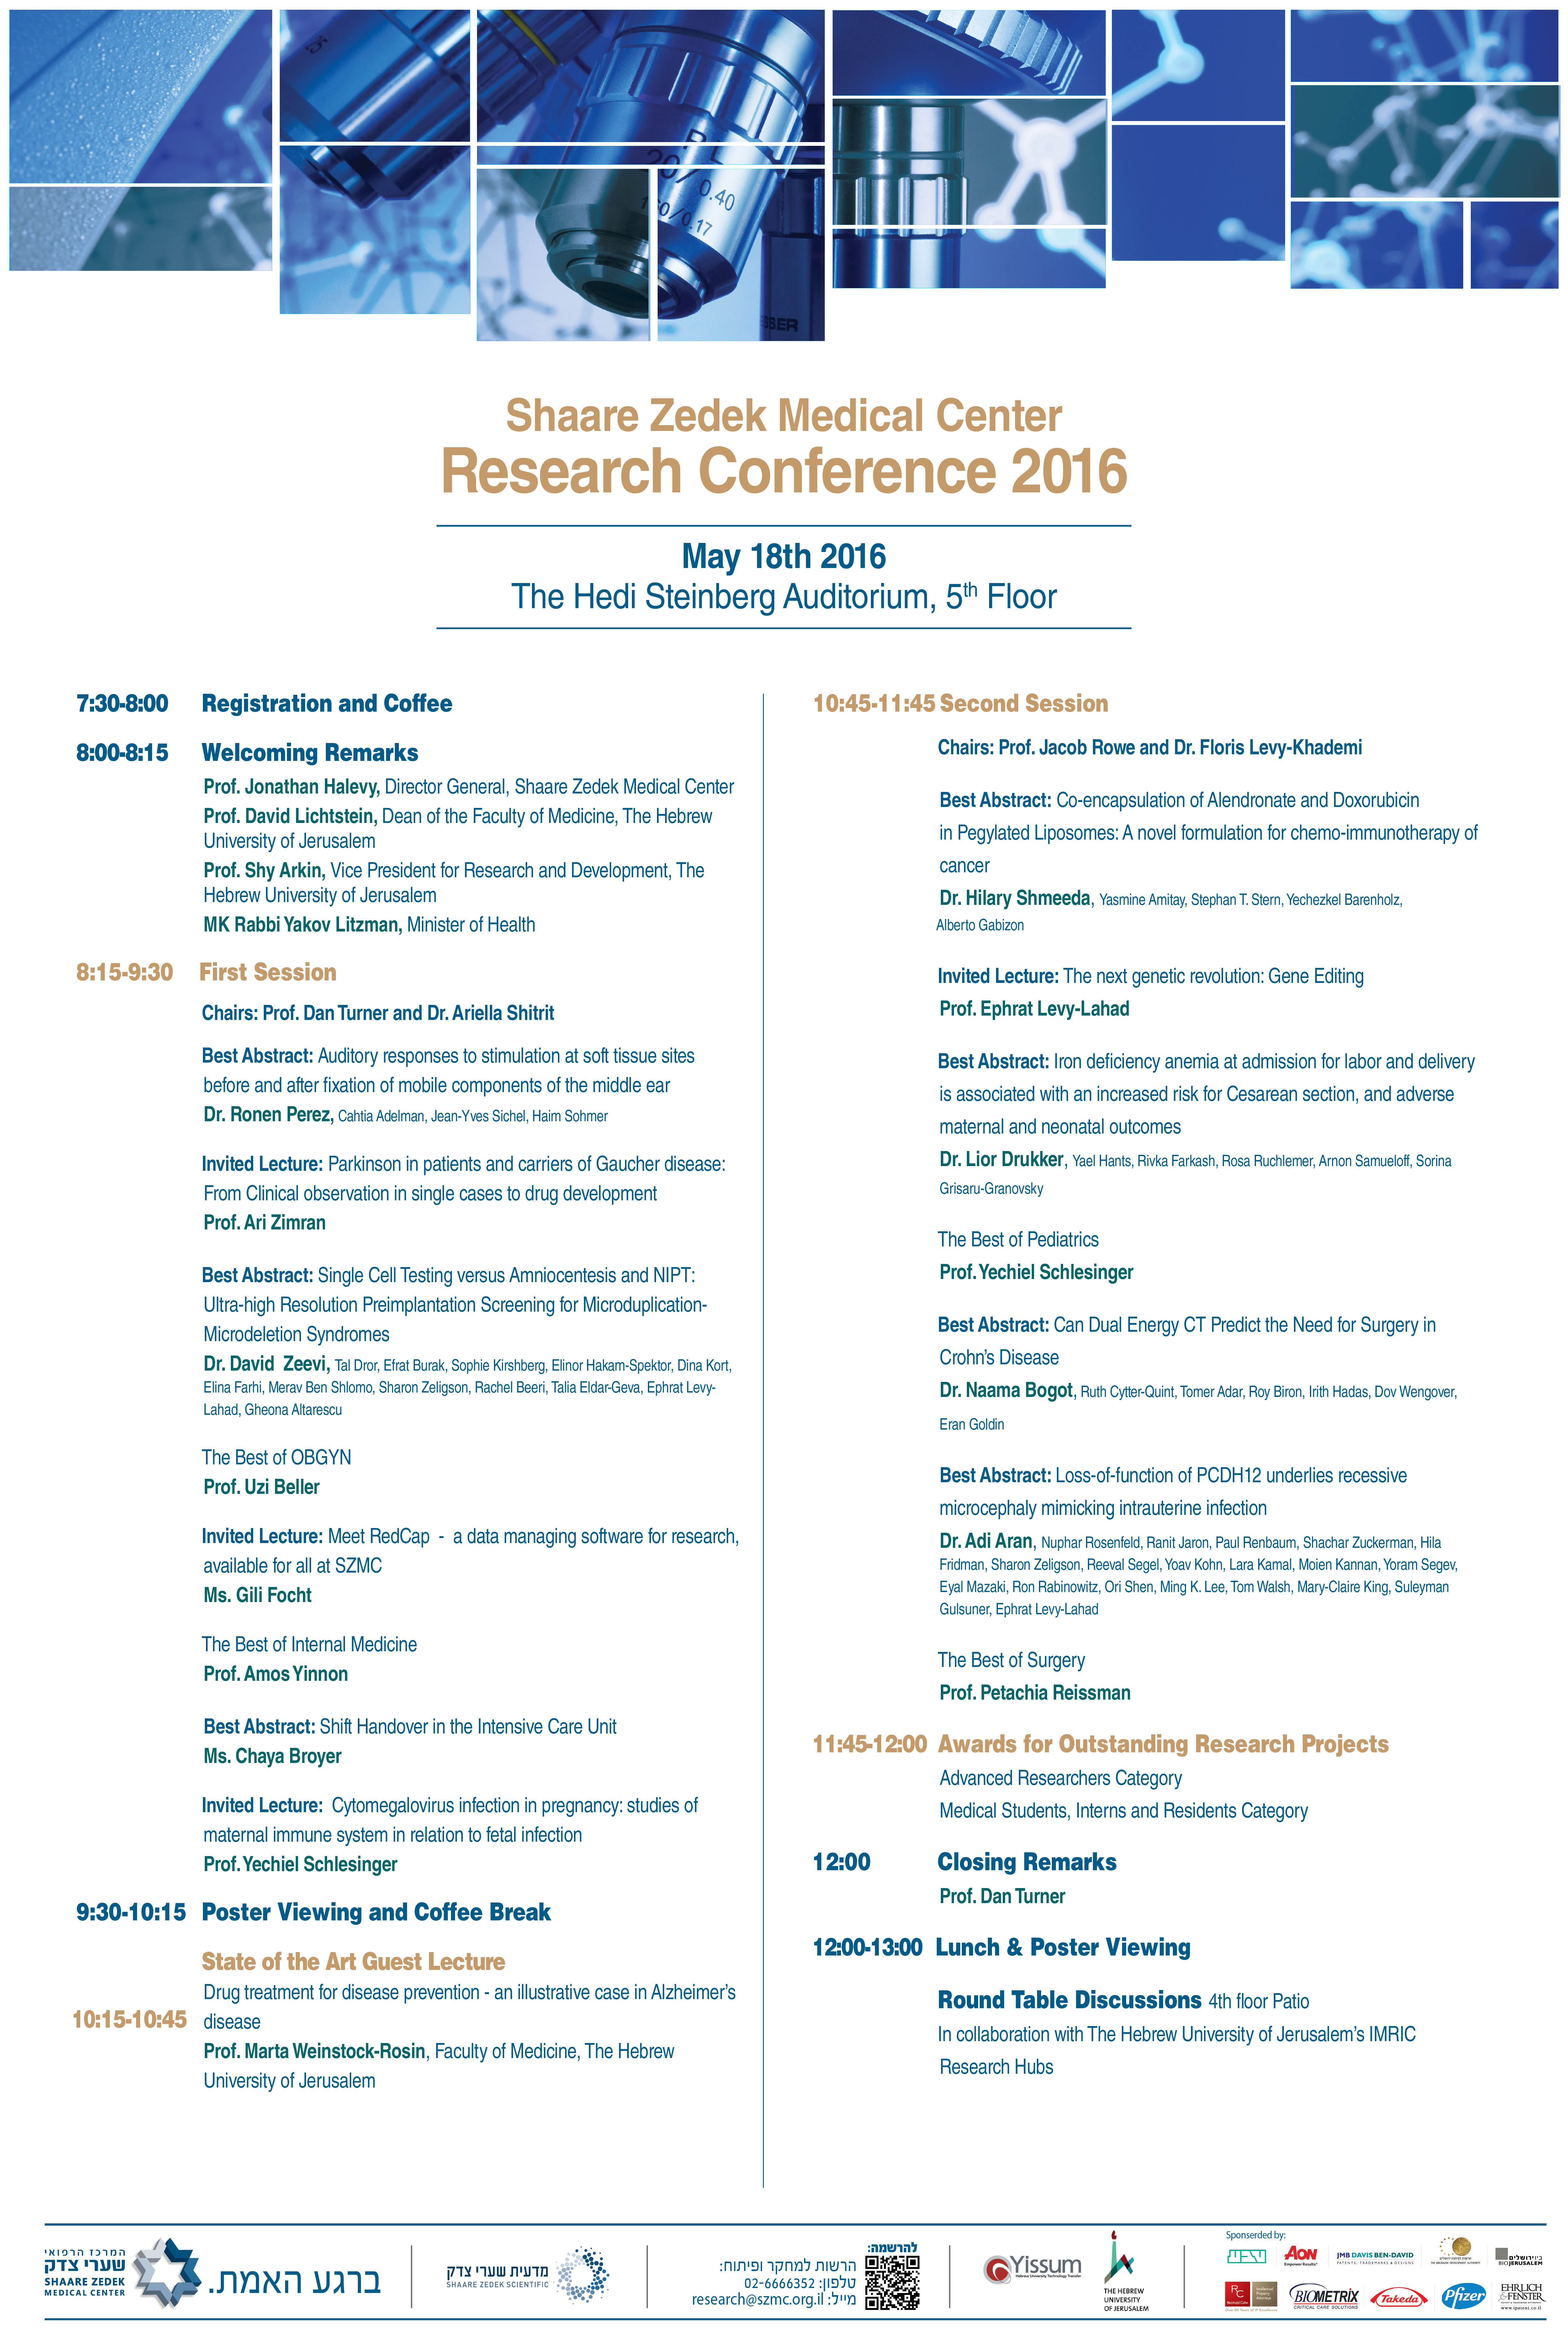 2016 research conference schedule